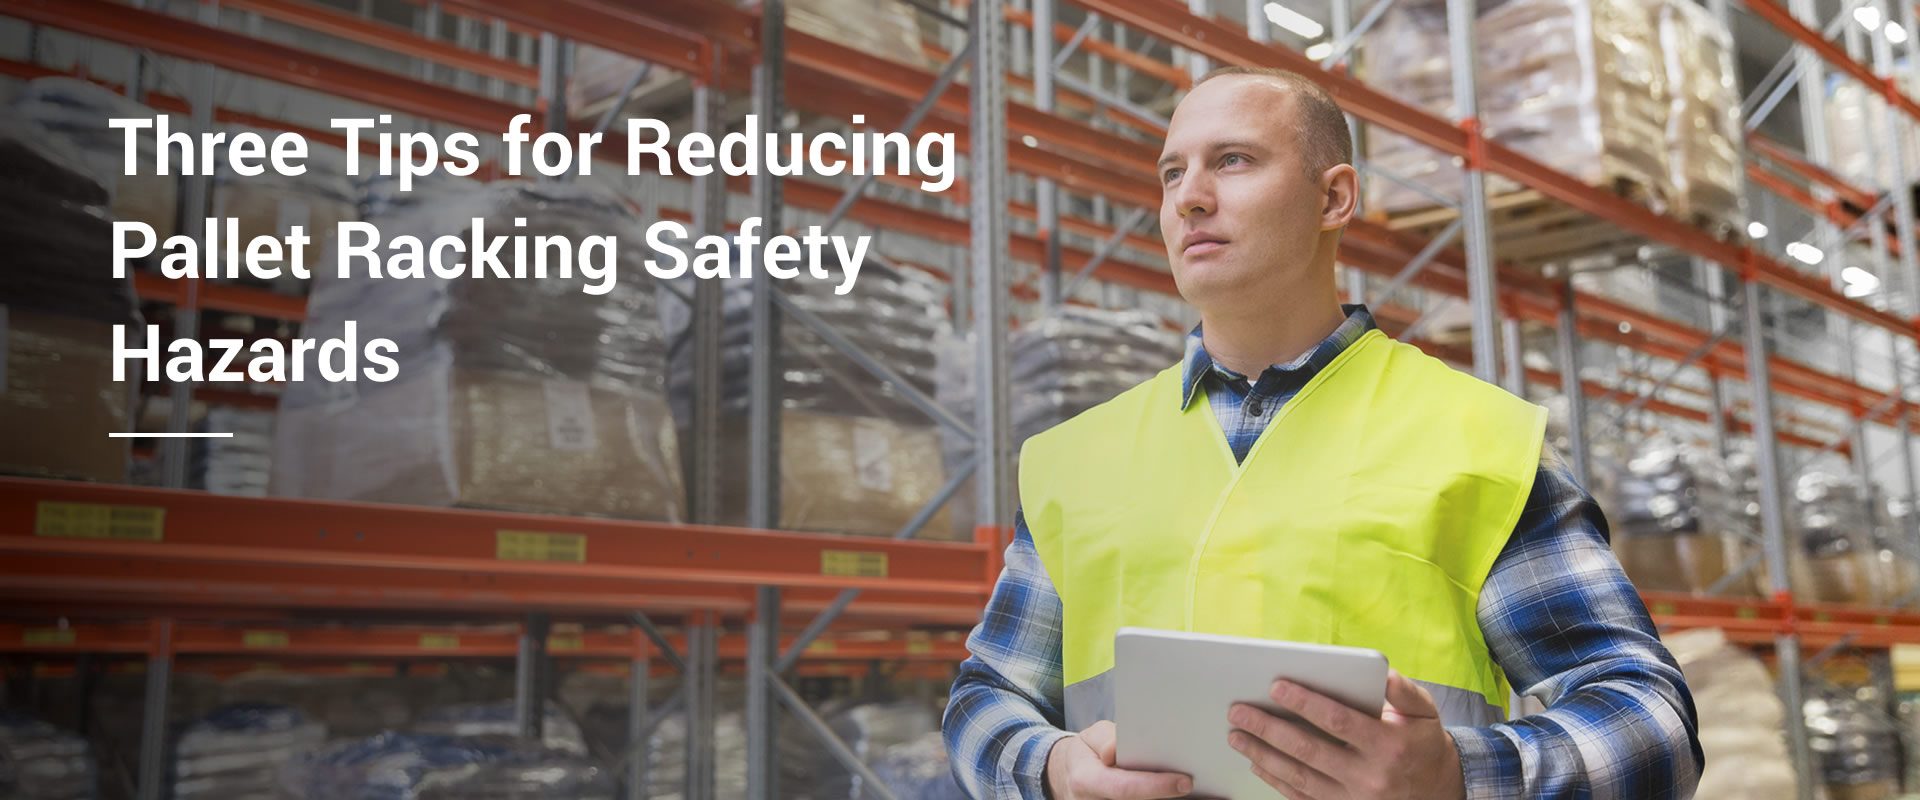 Three Tips for Reducing Pallet Racking Safety Hazards